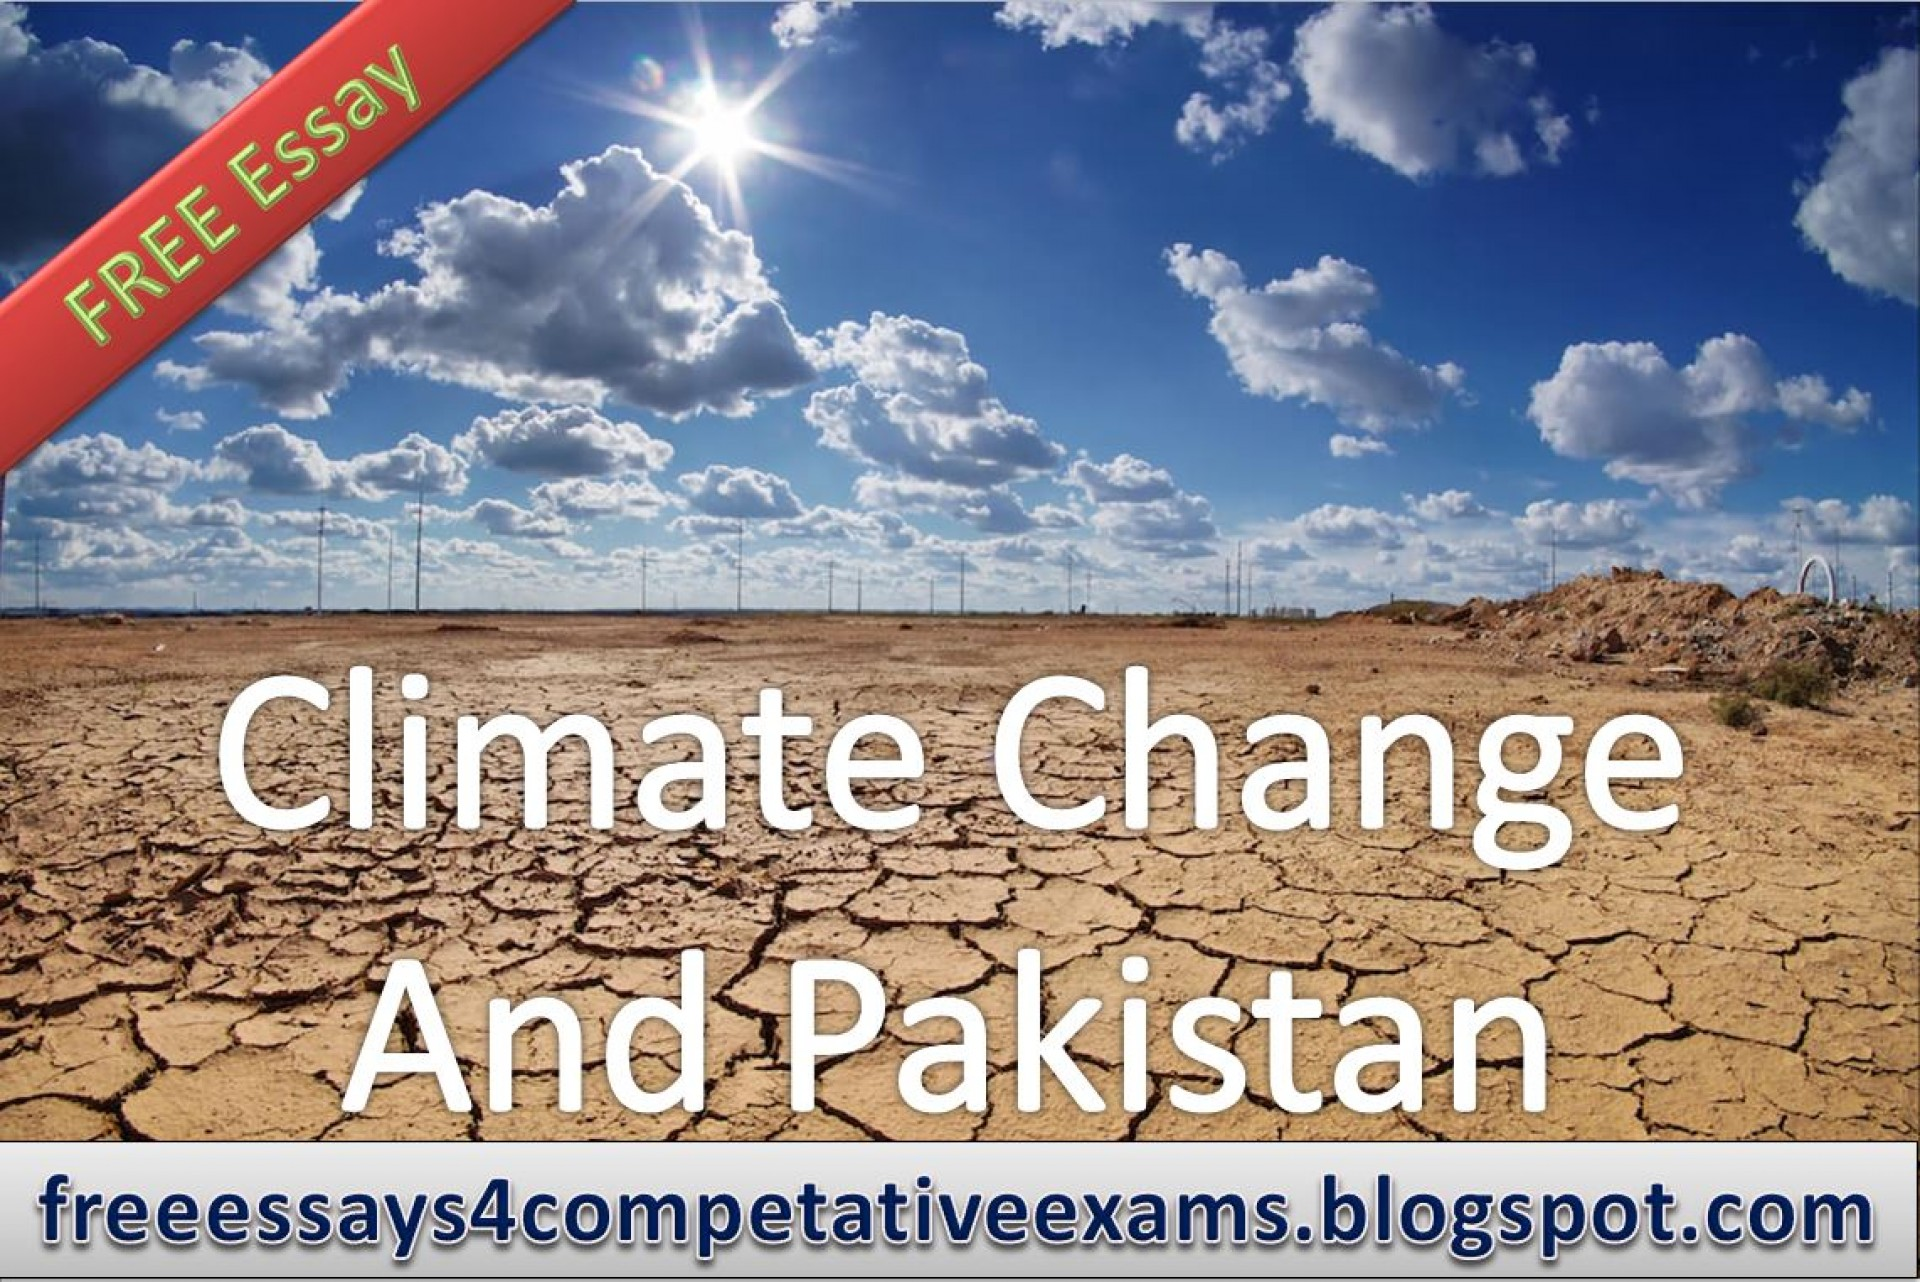 001 Research Paper Climate2bchange2band2bpakistan Jpg Essay On Climate Change In Sensational Pakistan Css Forum Outline 1920